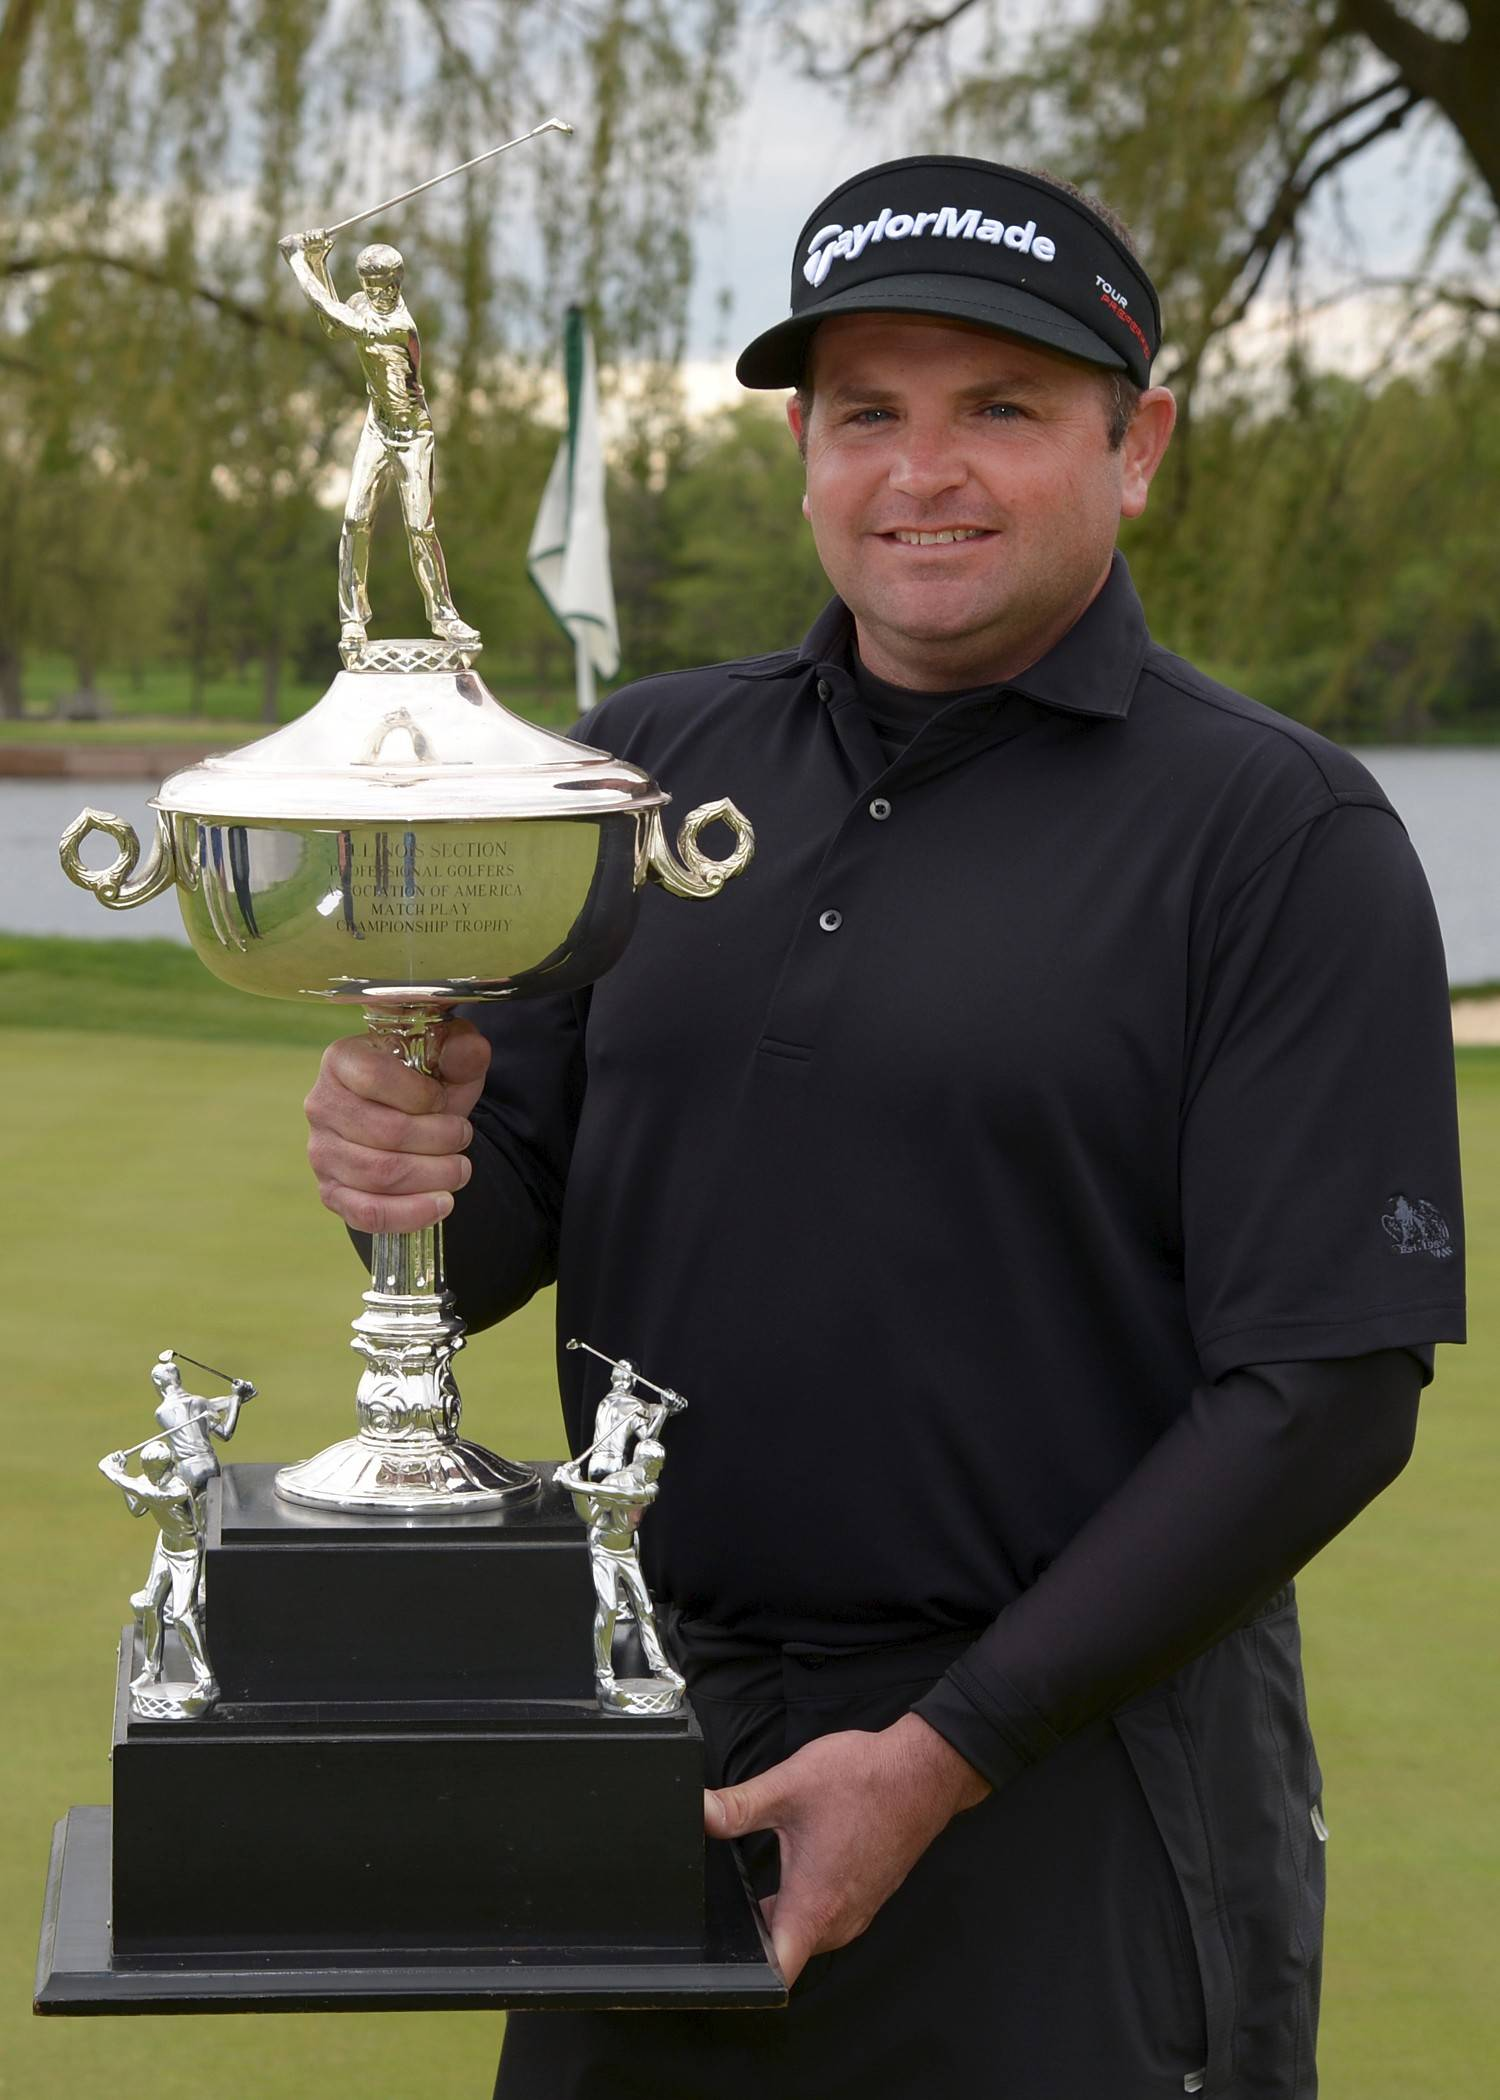 Curtis Malm, with the Illinois PGA Match Play Championship trophy.